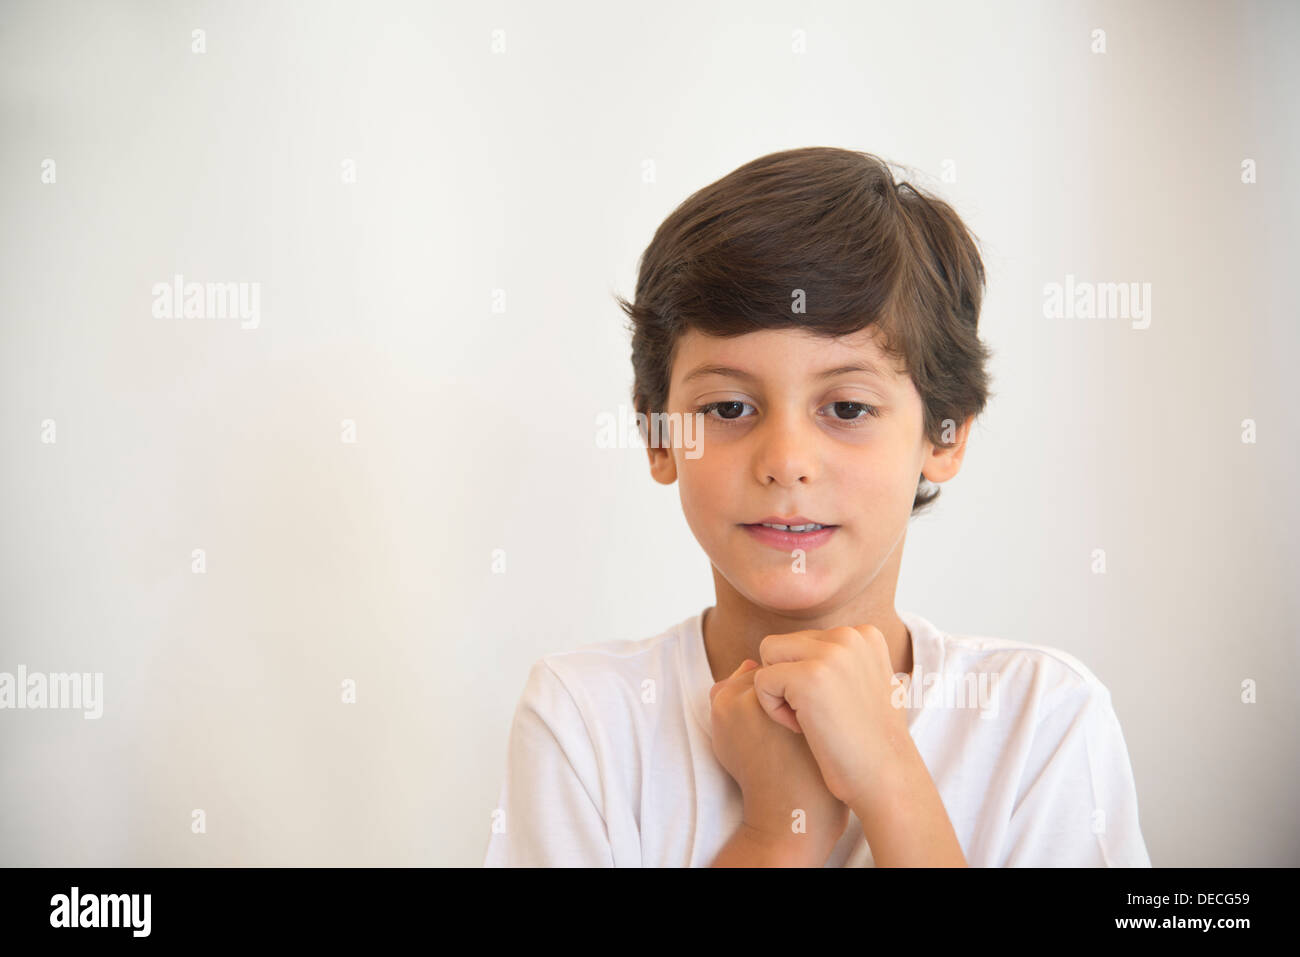 boy, kid, schoolboy, expecting, expectation, excitement, waiting for, surprise, childish,  dreaming, waiting for, happy, - Stock Image